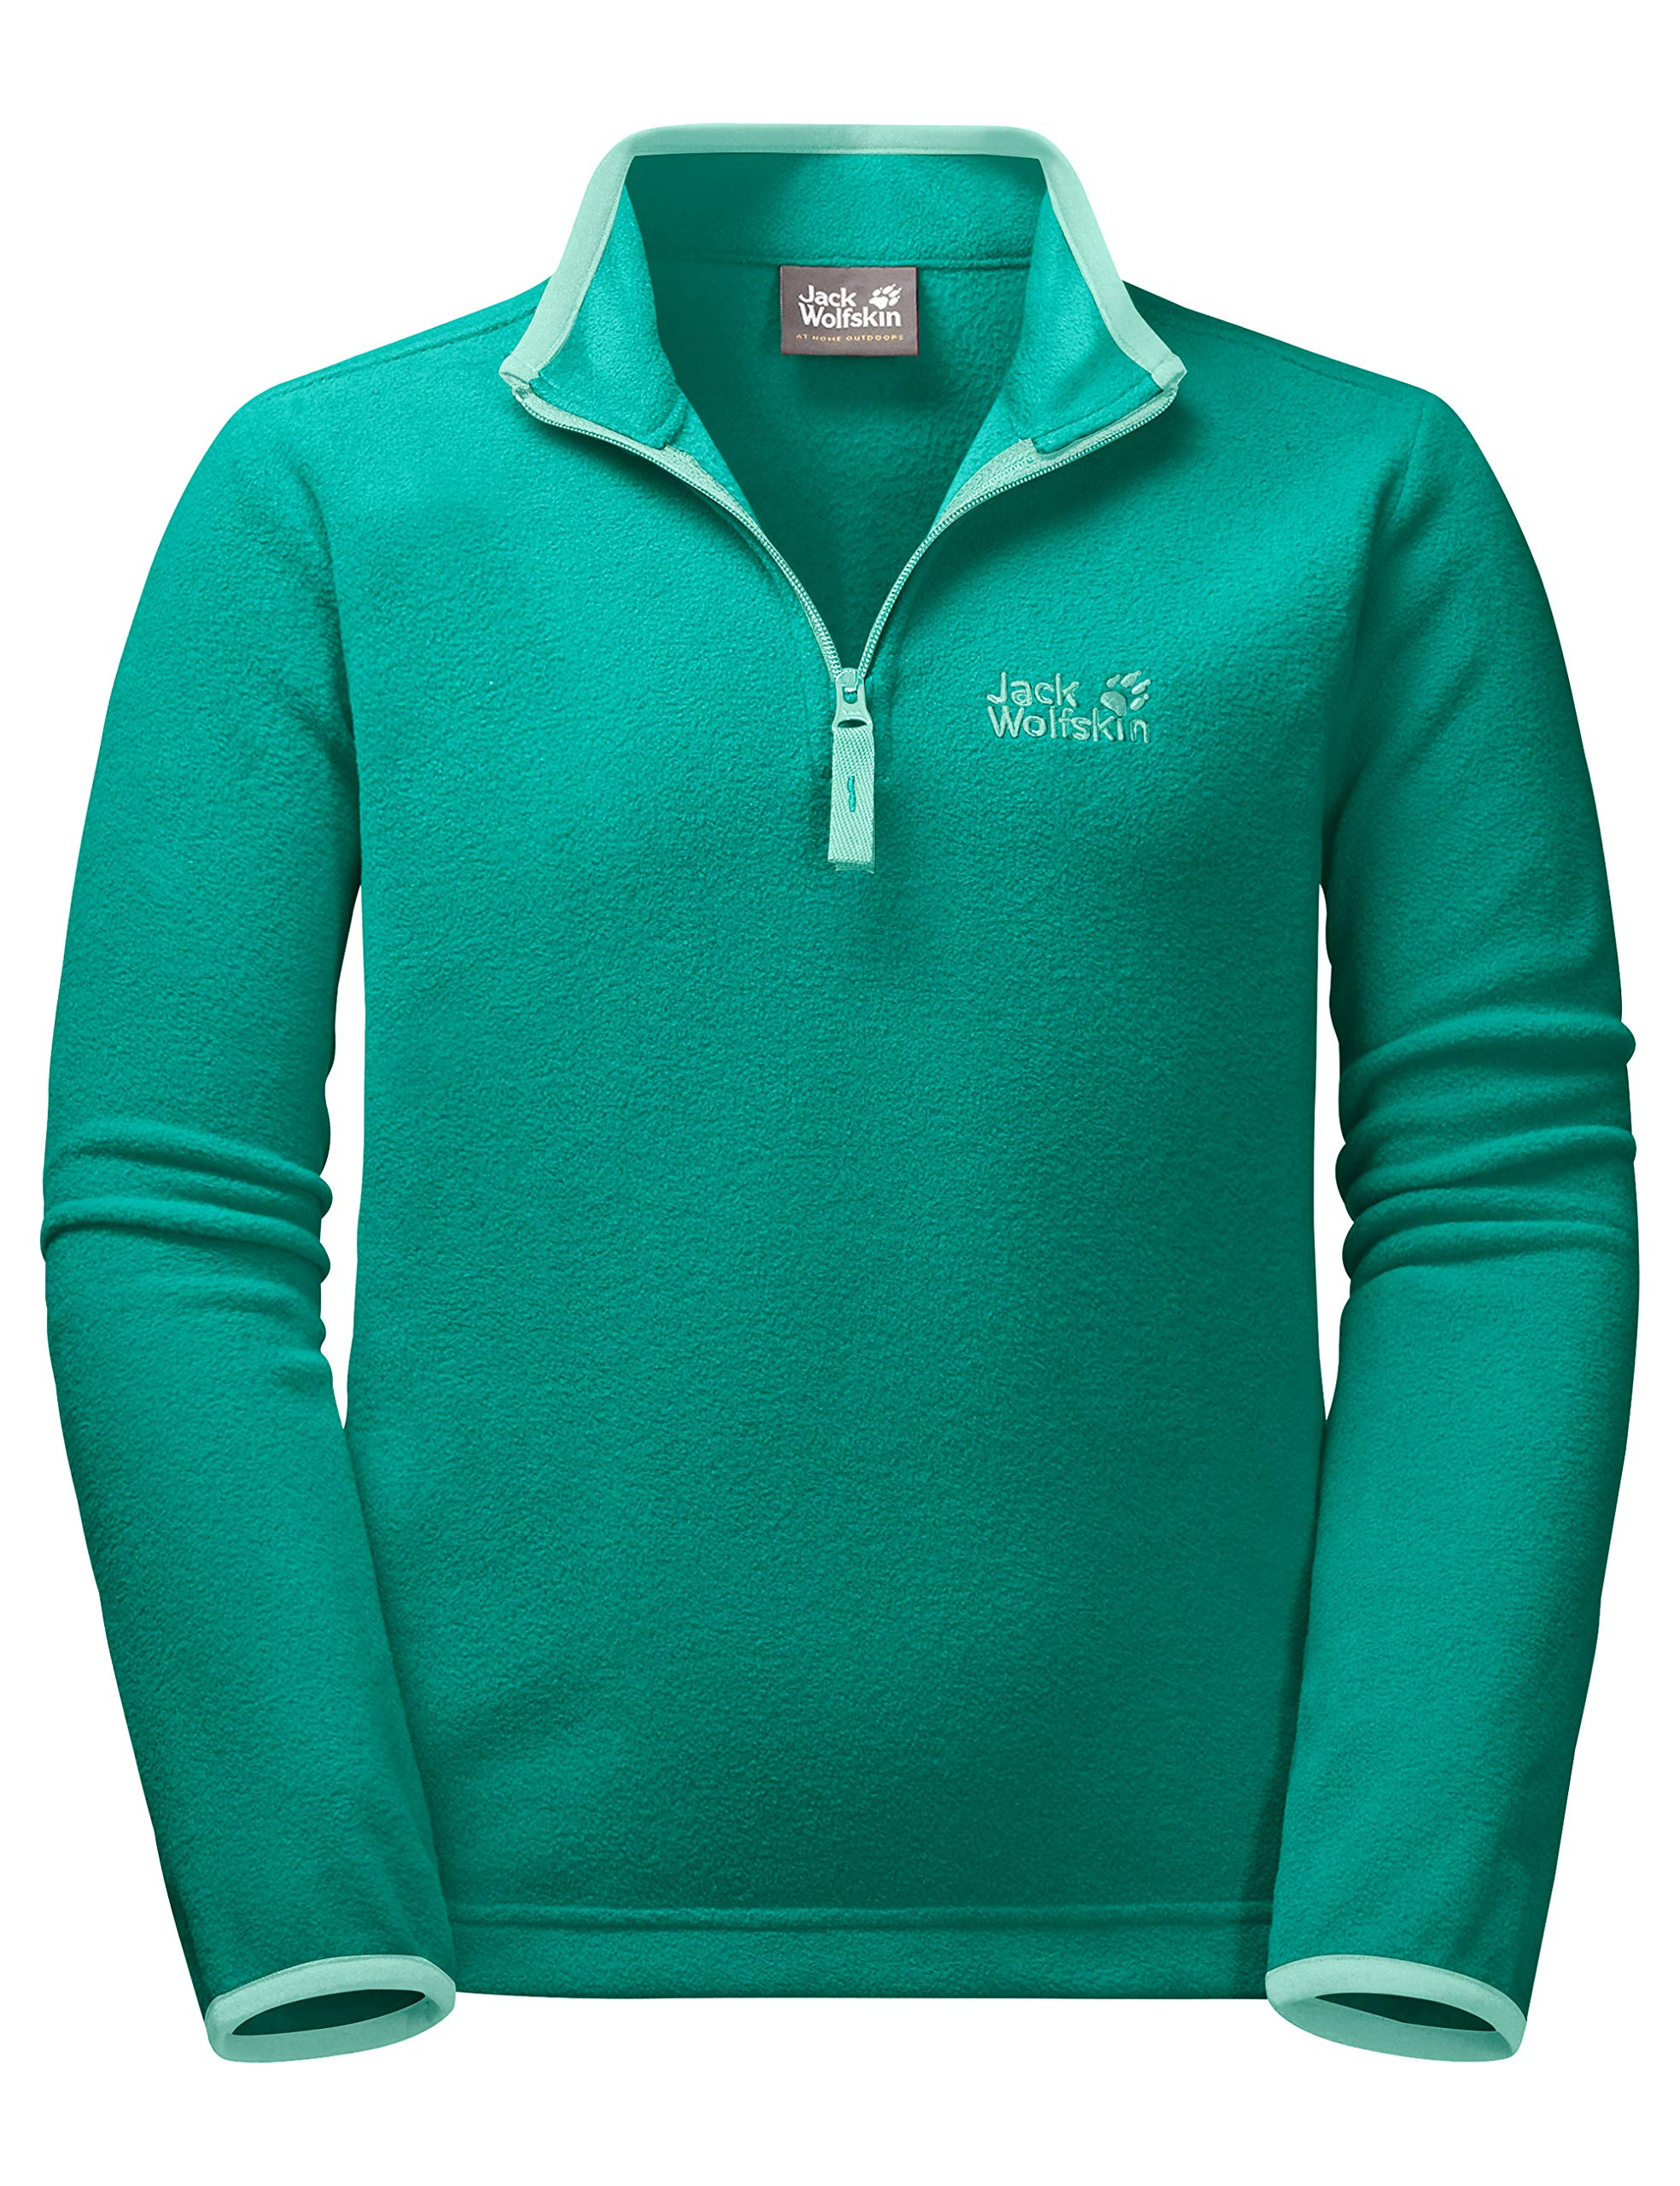 Jack Wolfskin Wolf Pullover, 176 (14 Years & Older), Deep Mint by Jack Wolfskin